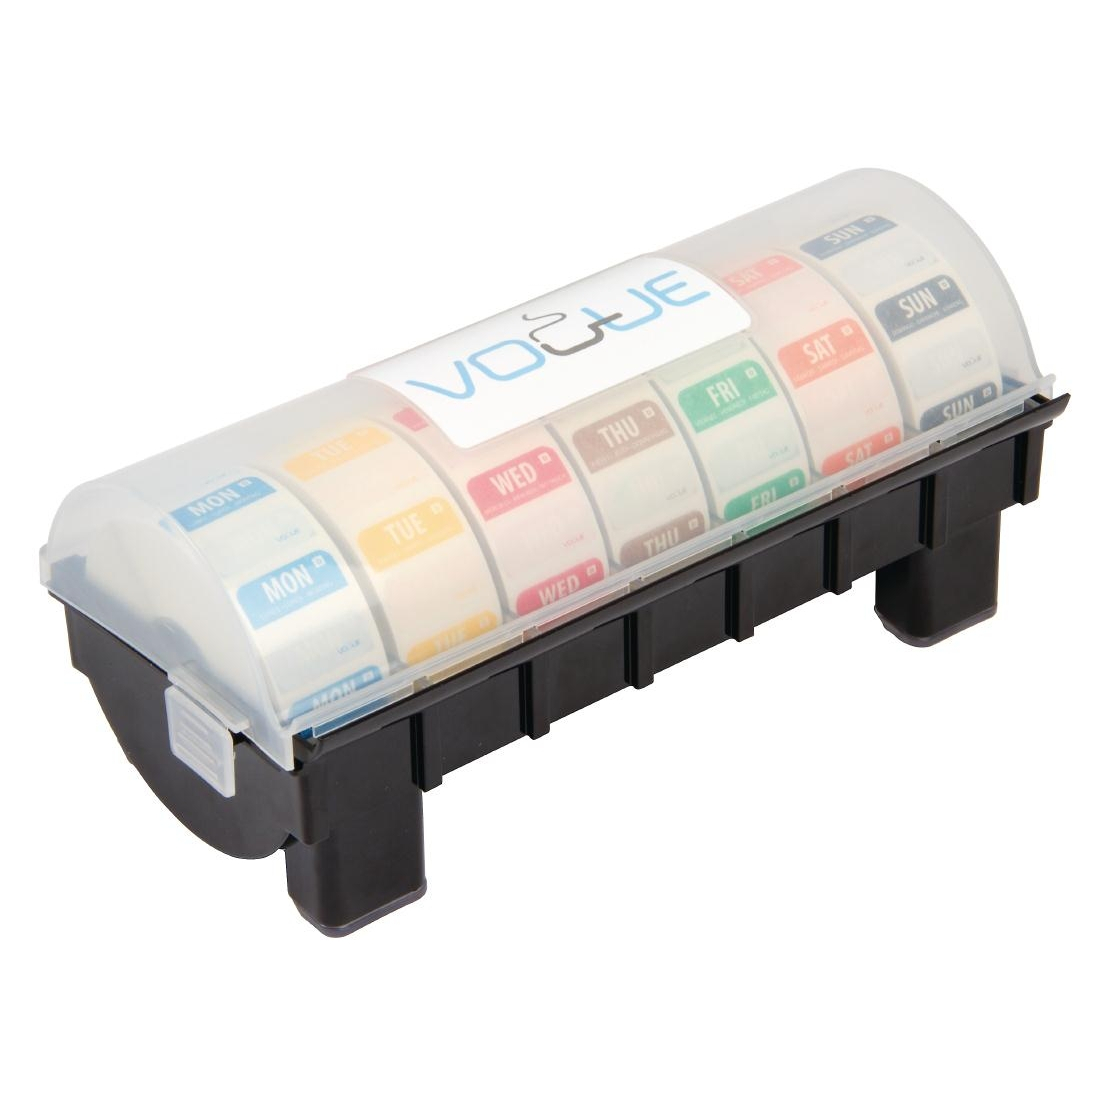 Dissolvable Colour Coded Food Label Starter kit with 1inch Dispenser